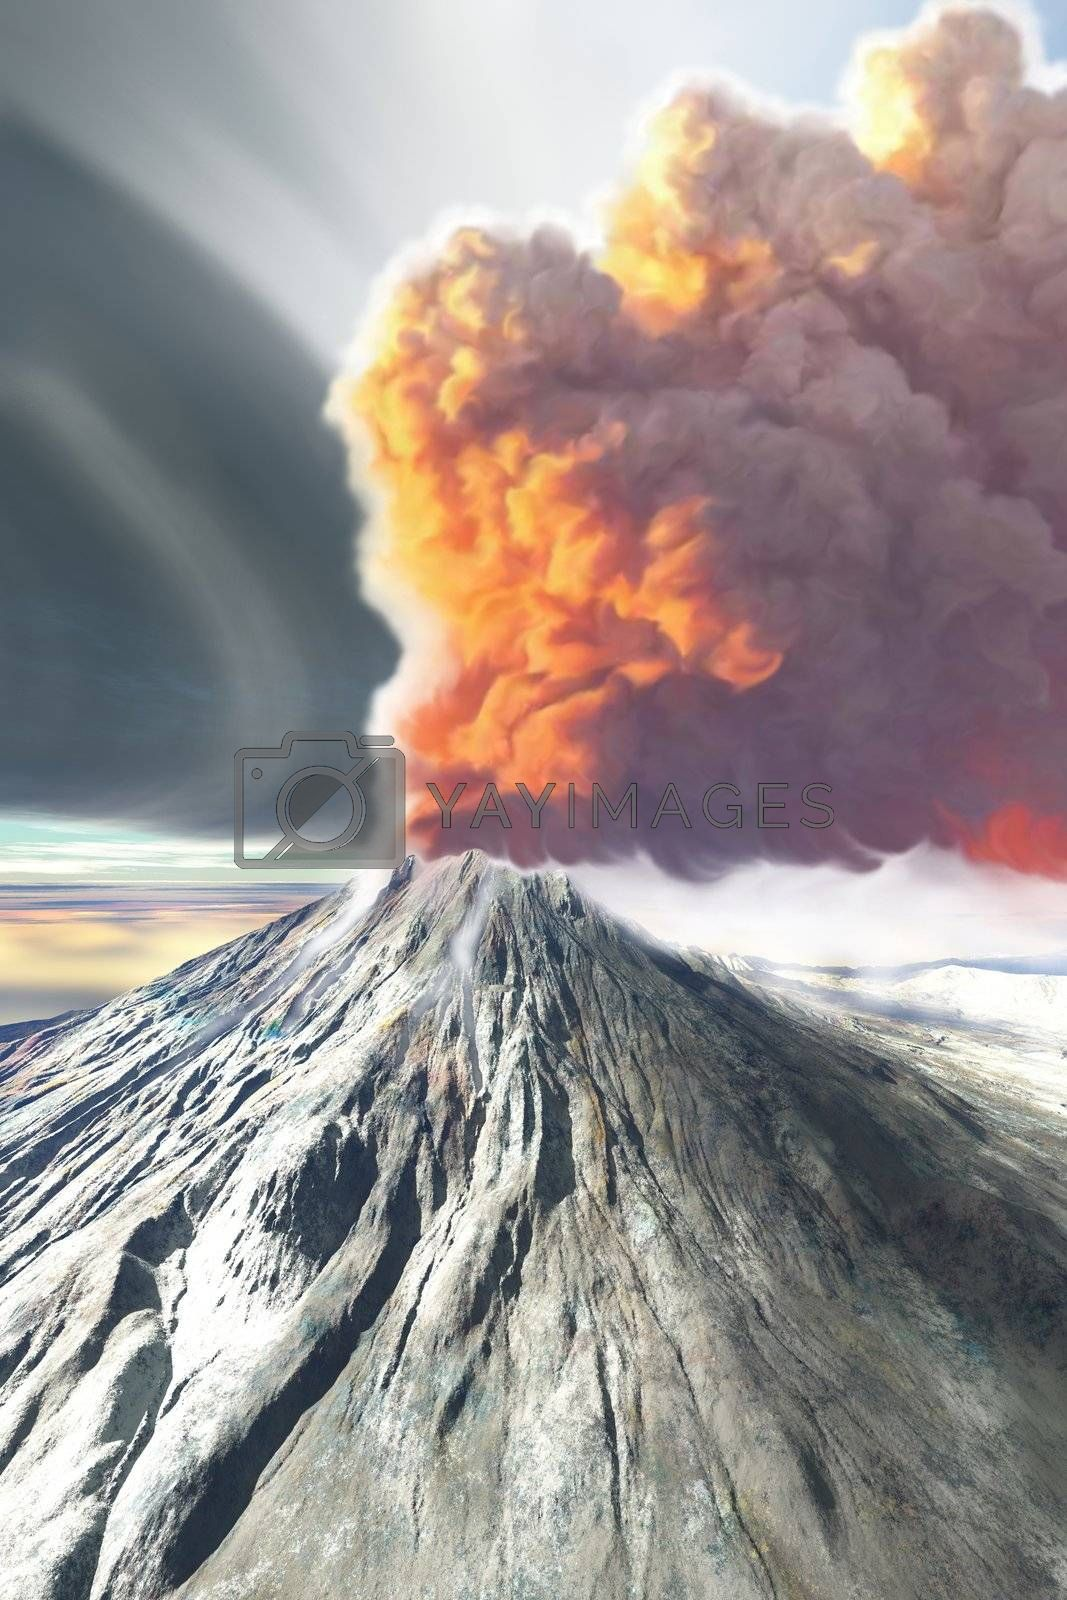 A volcano comes to life with billowing smoke.